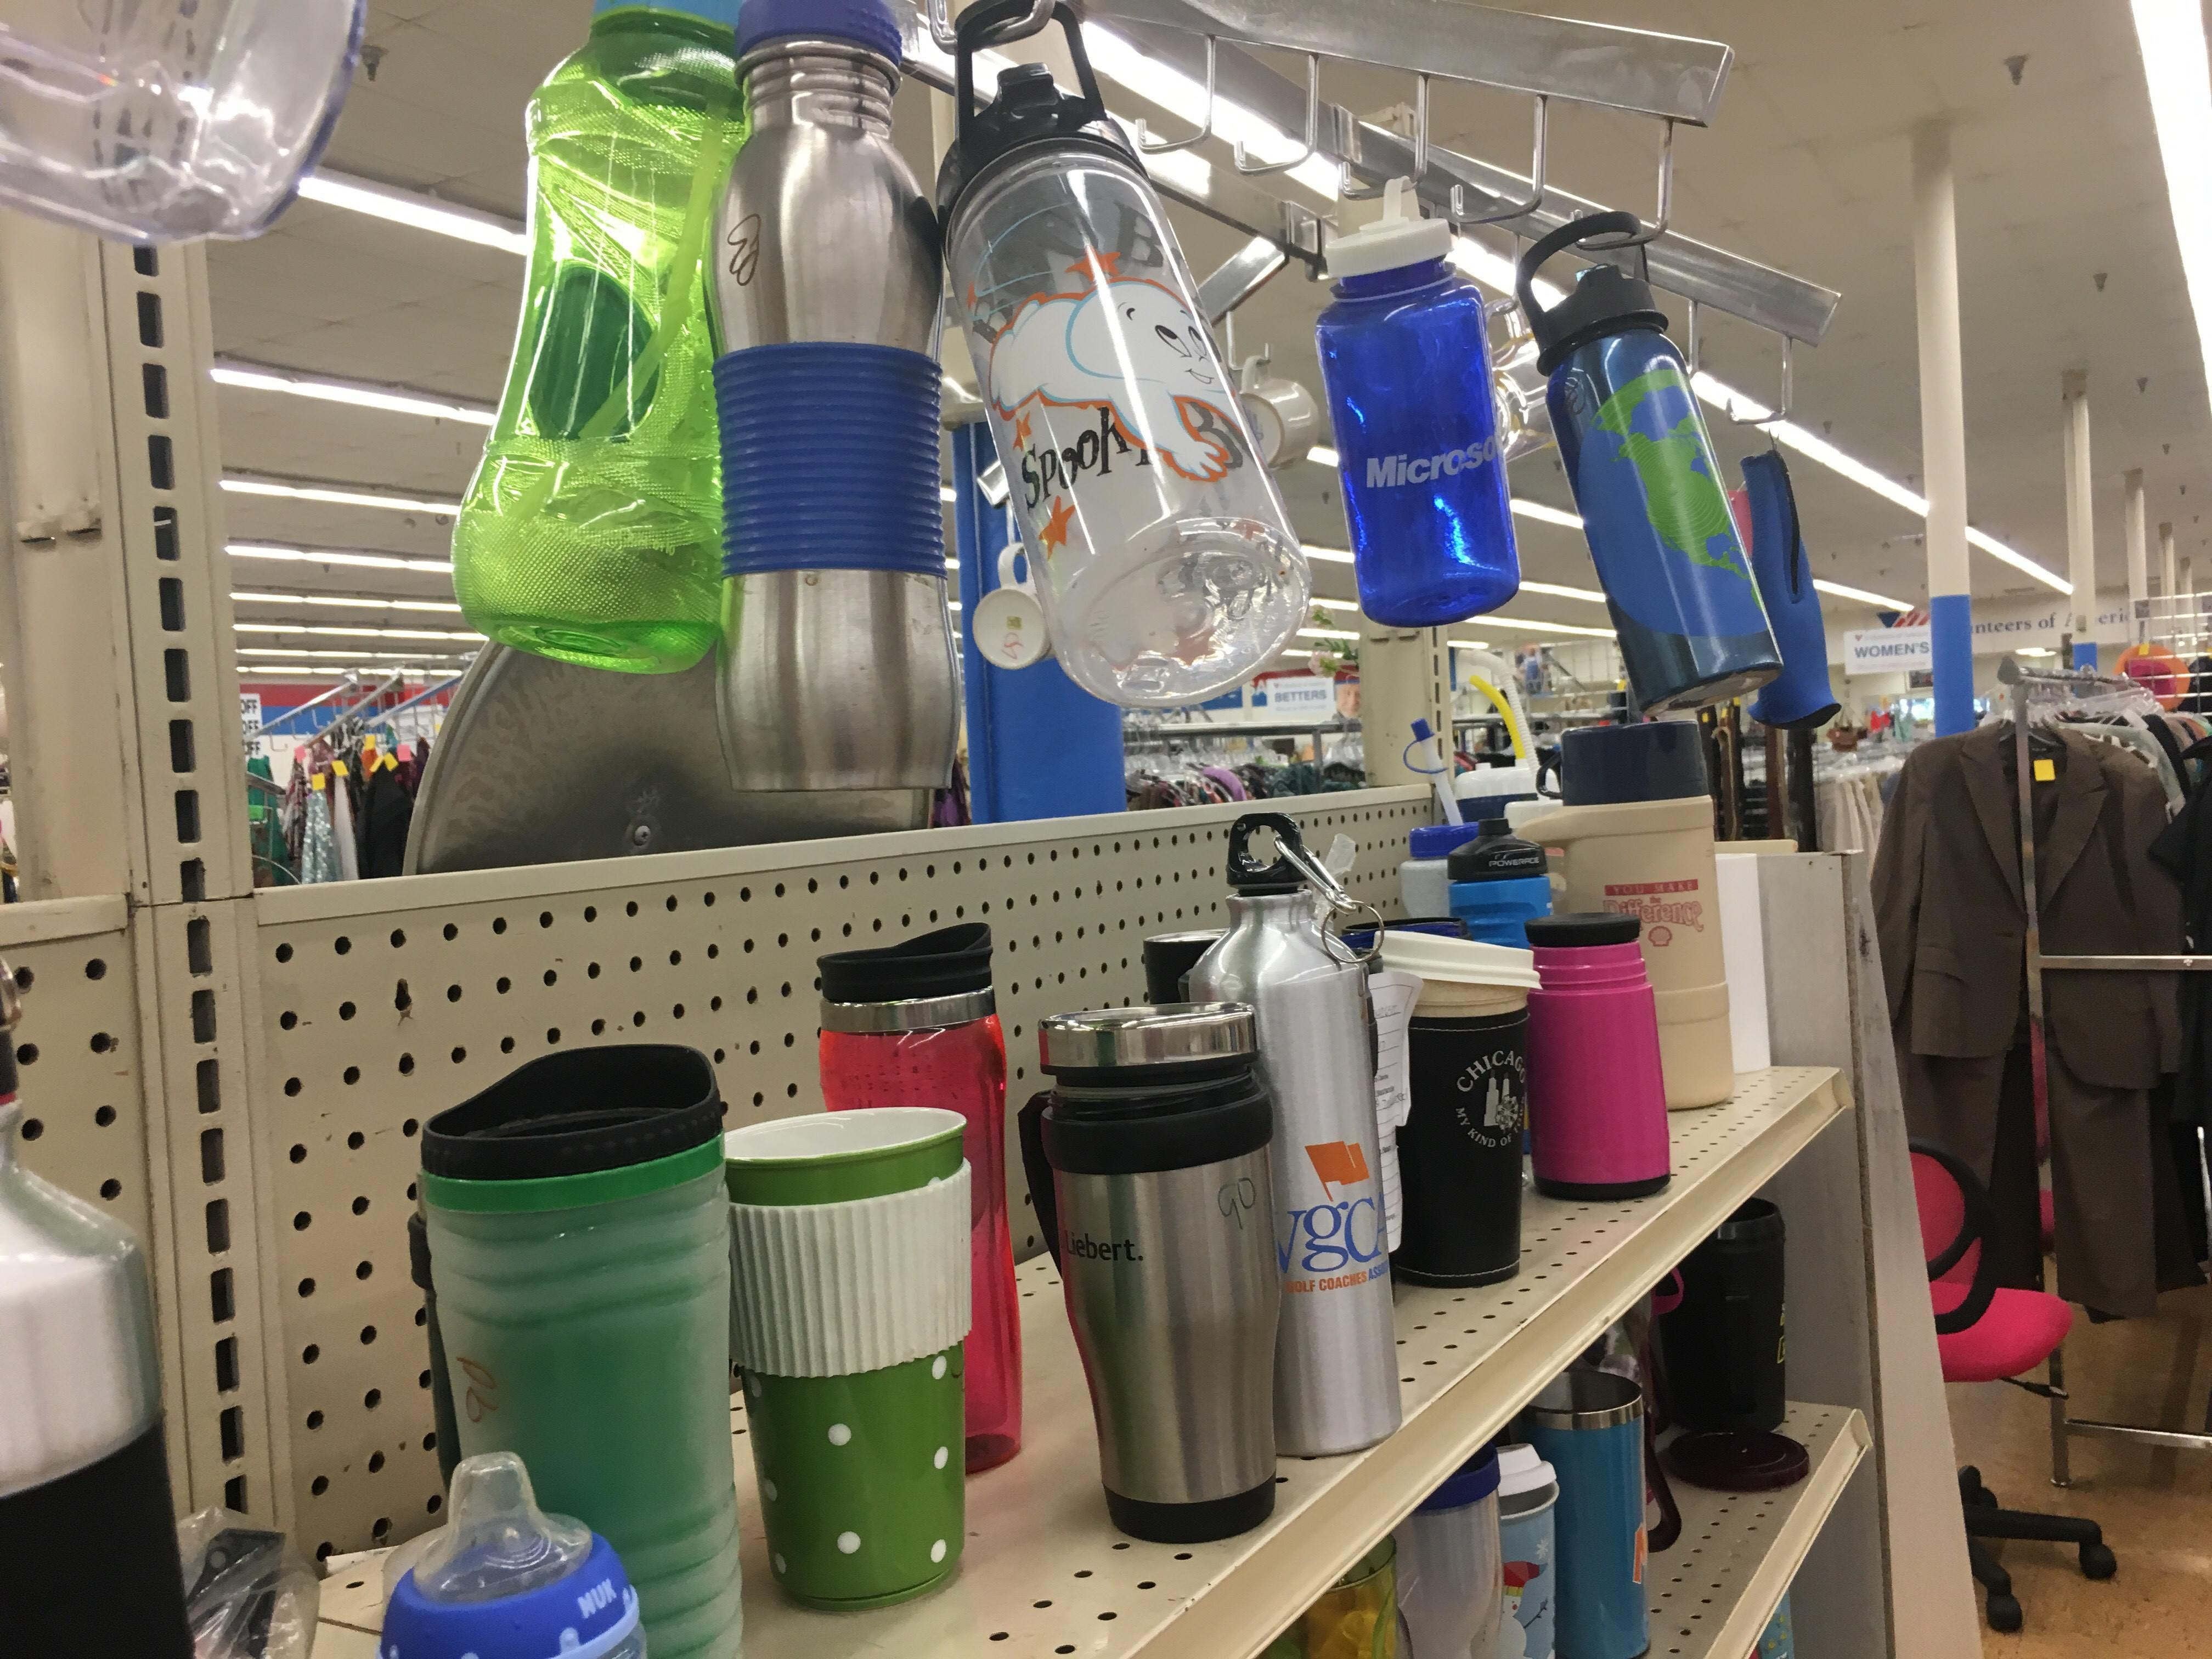 Volunteers of America thrift stores have so many water bottles to choose from